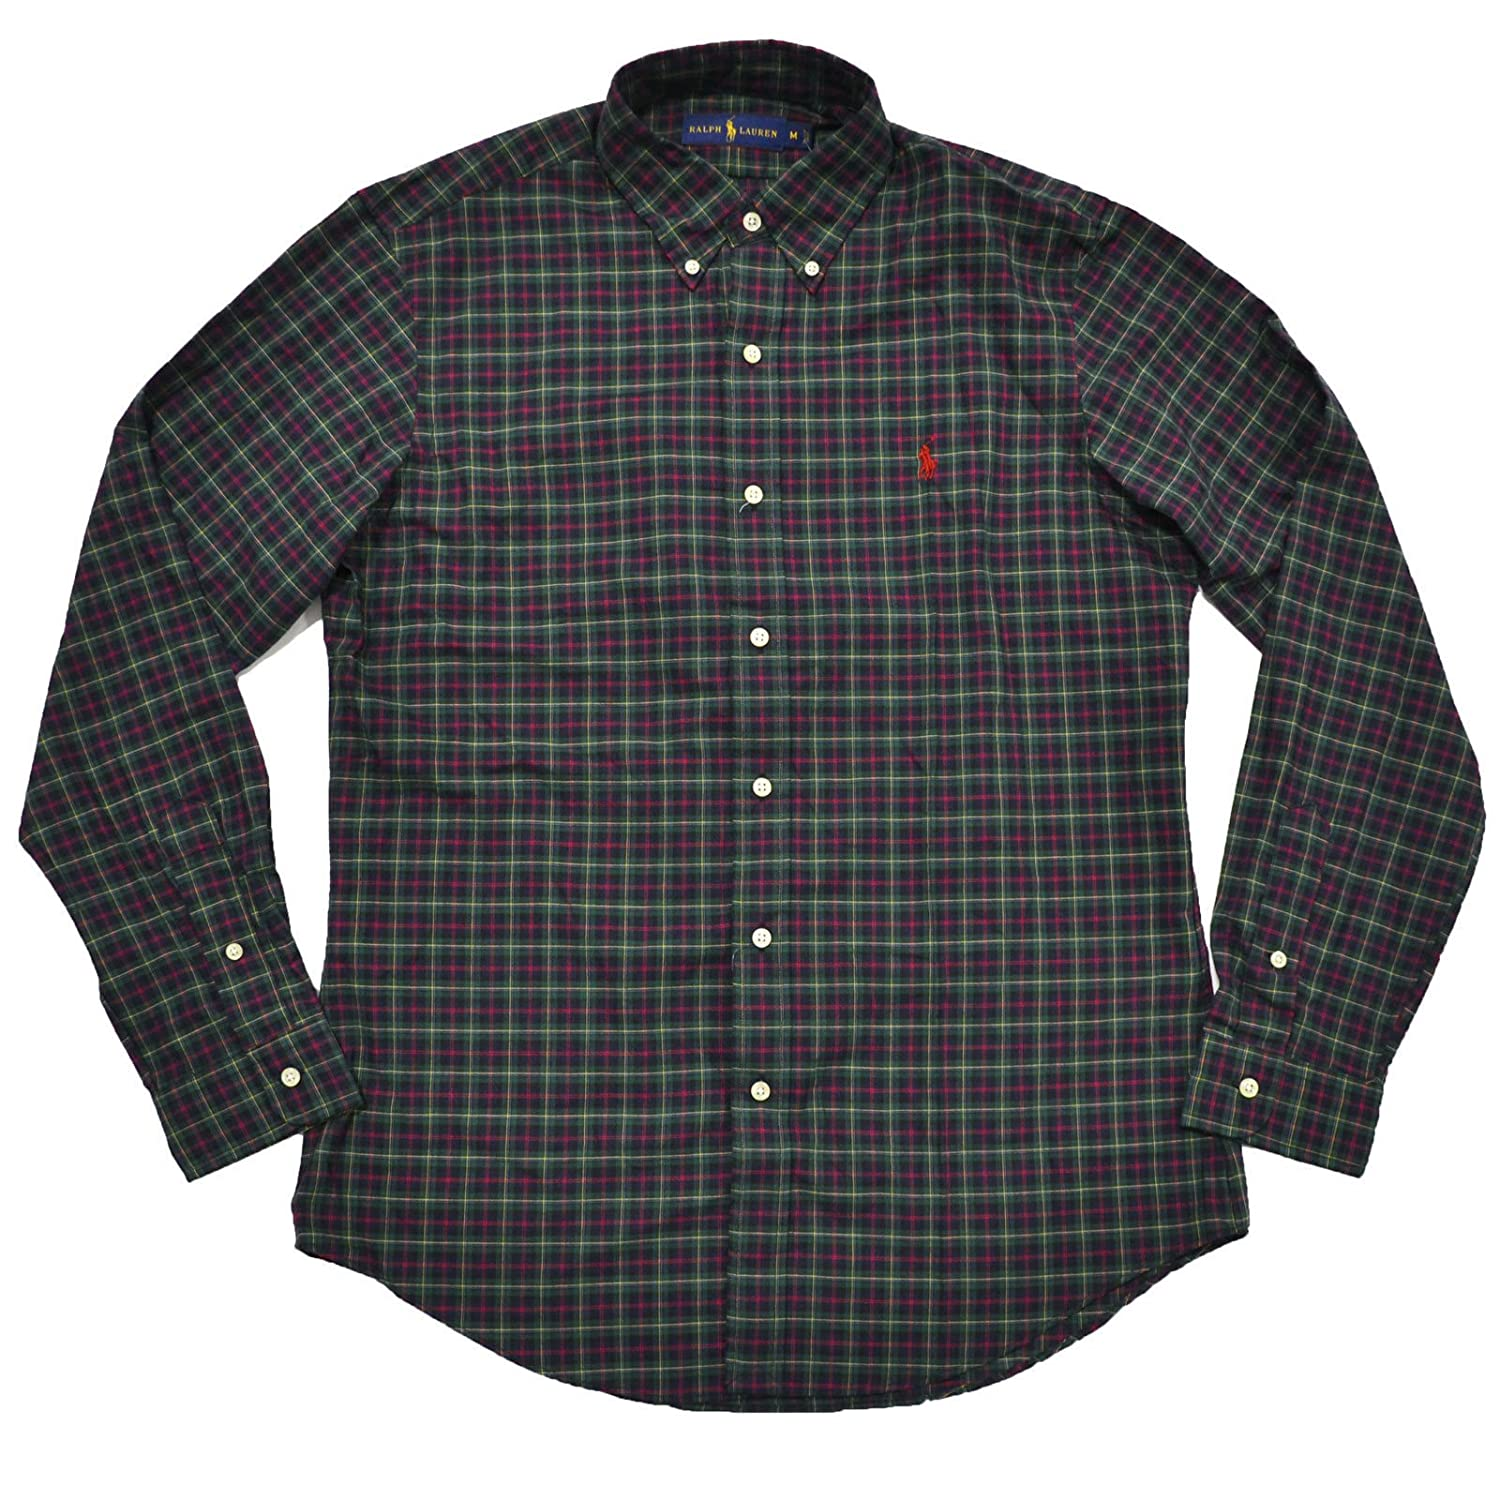 9fa2c2d9 Polo Ralph Lauren Men's Plaid Poplin Sport Shirt (X-Large, Green Red ...